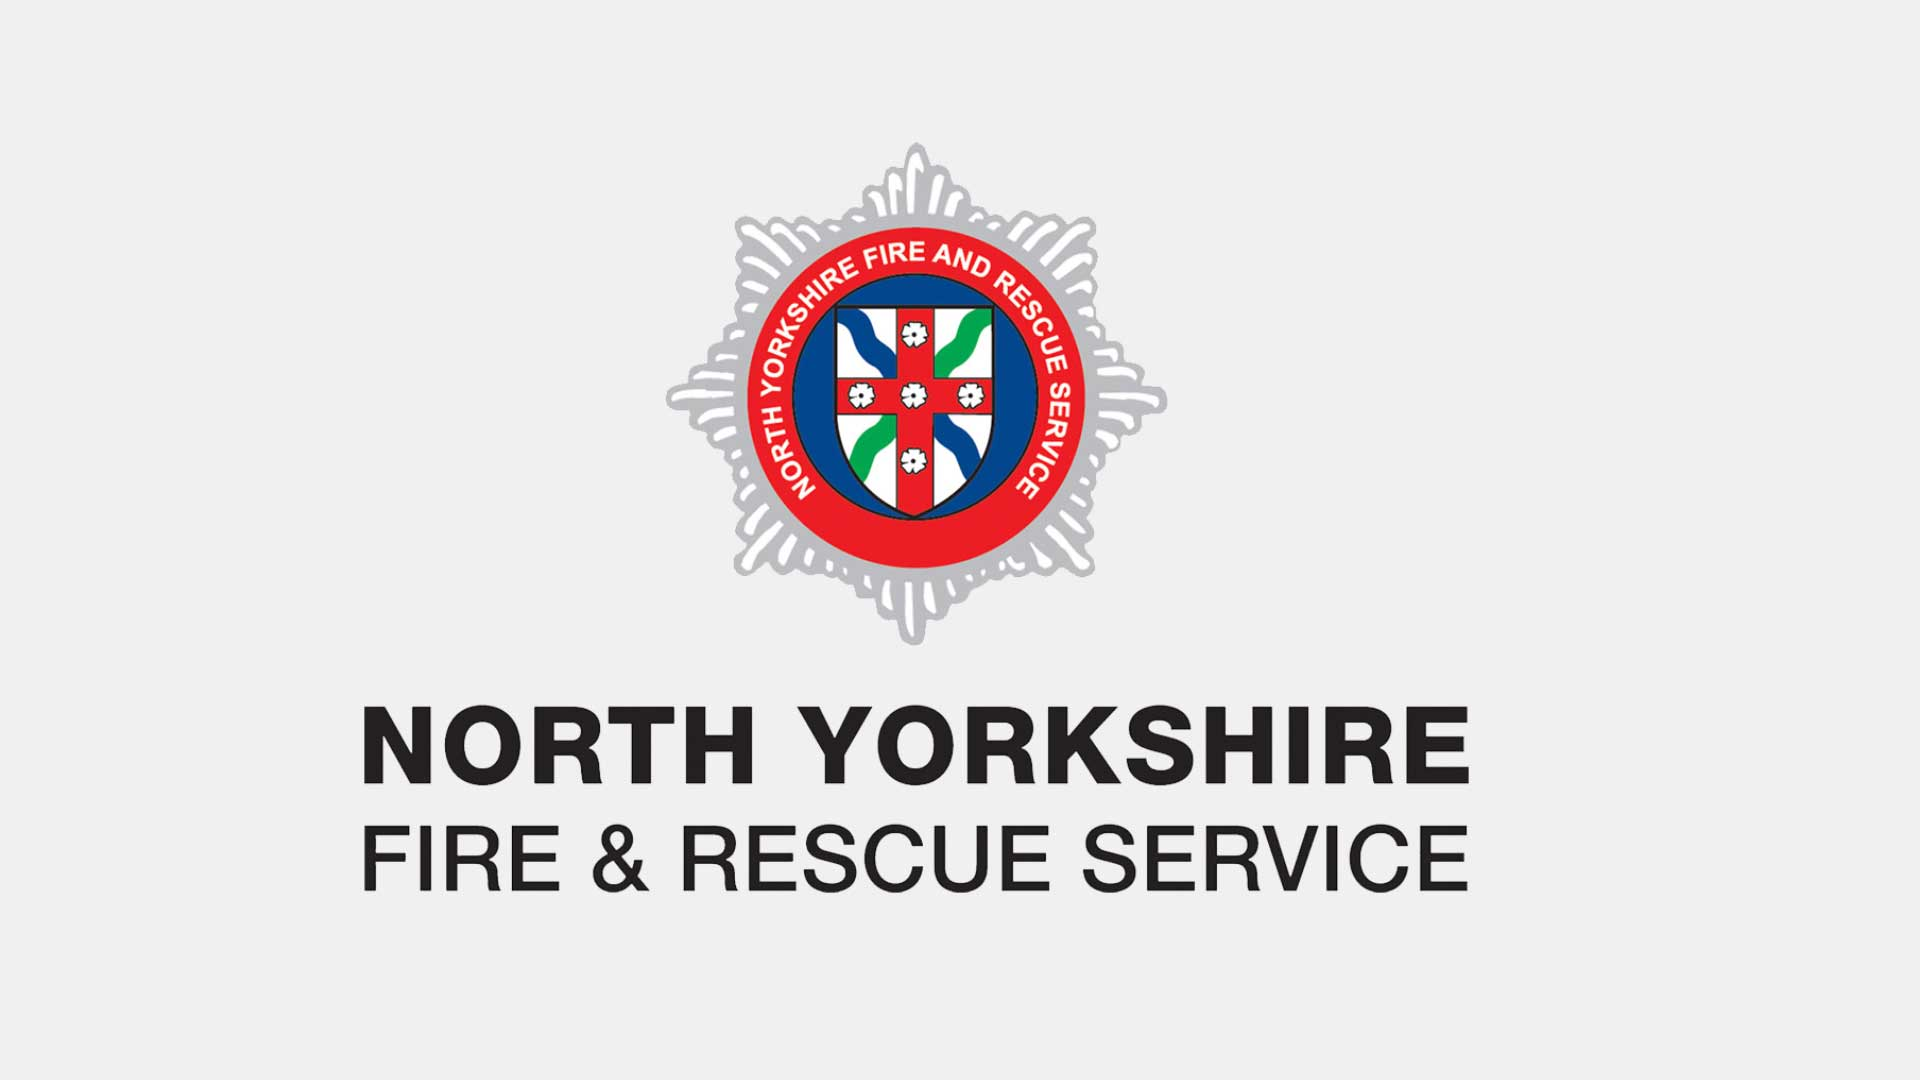 Diversity and inclusion workshop at North Yorkshire Fire and Rescue Service